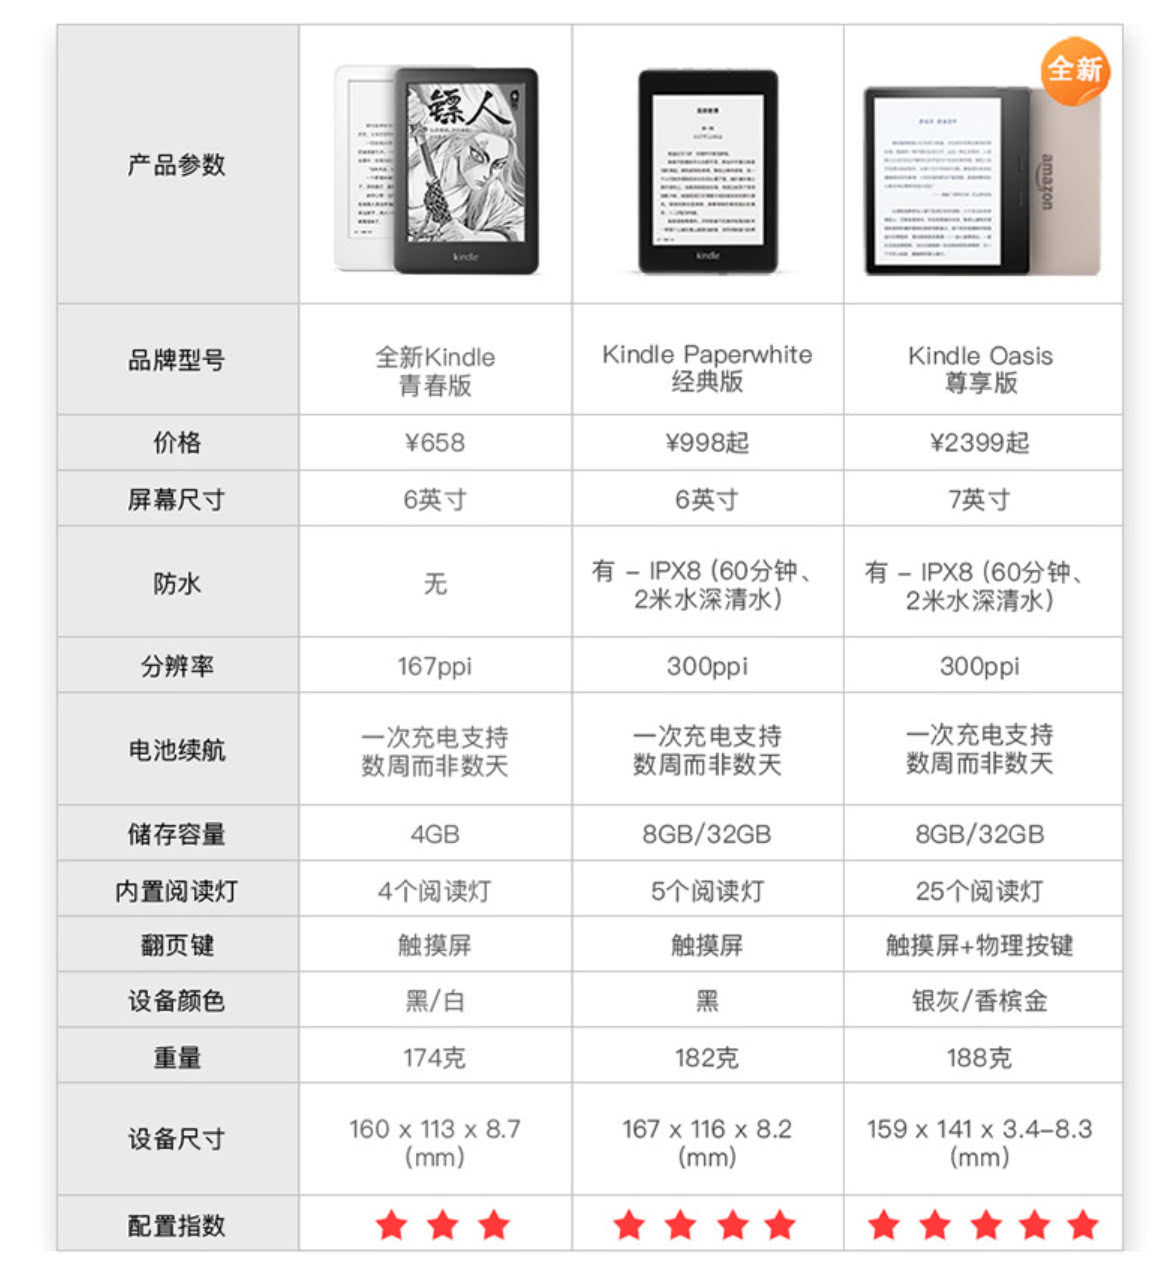 Kindle Oasis首发评测:最强电子书 没有之一